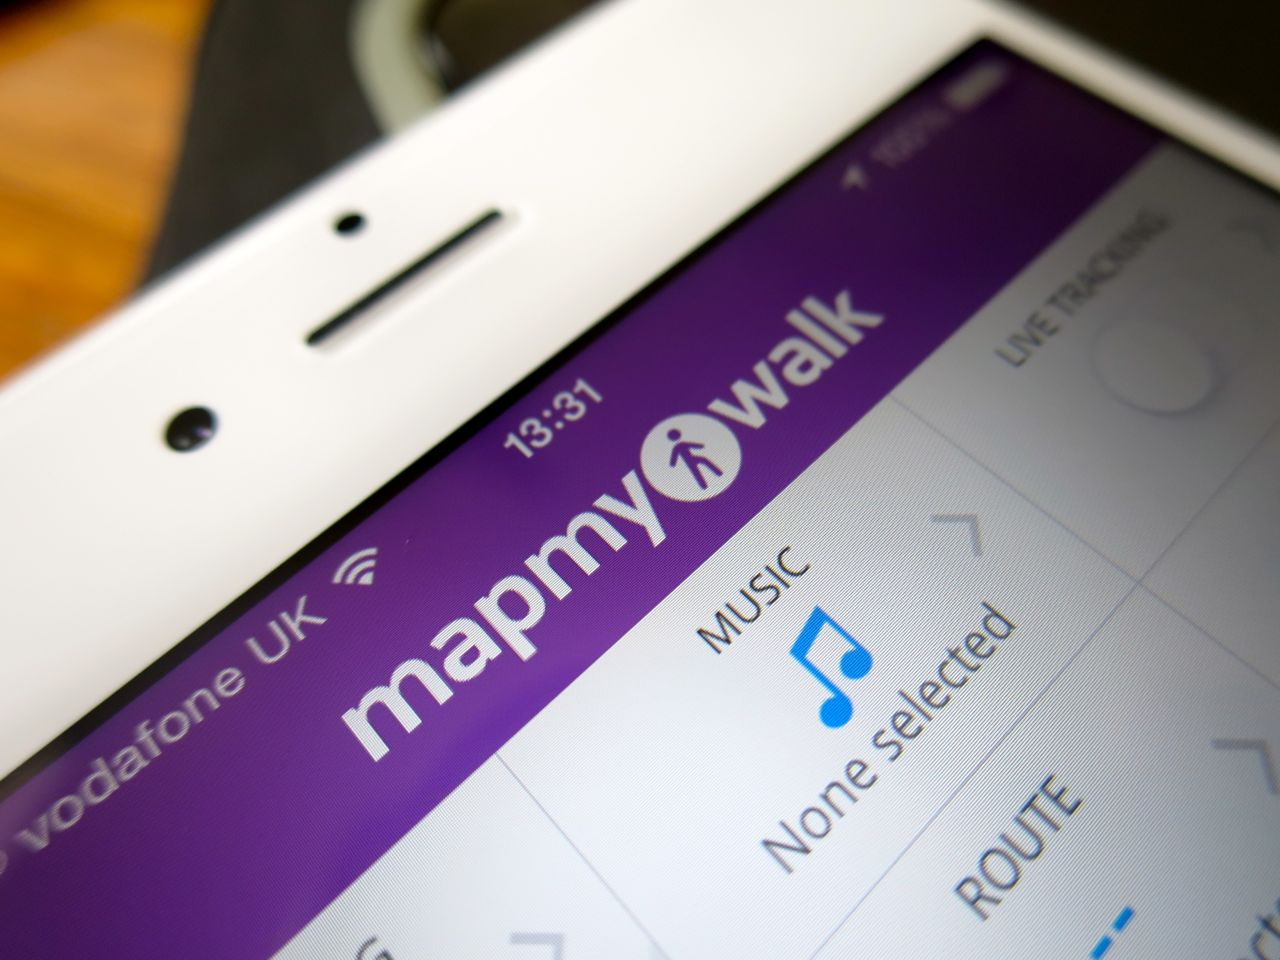 map my walk review and power walk accessories! — the what now blog